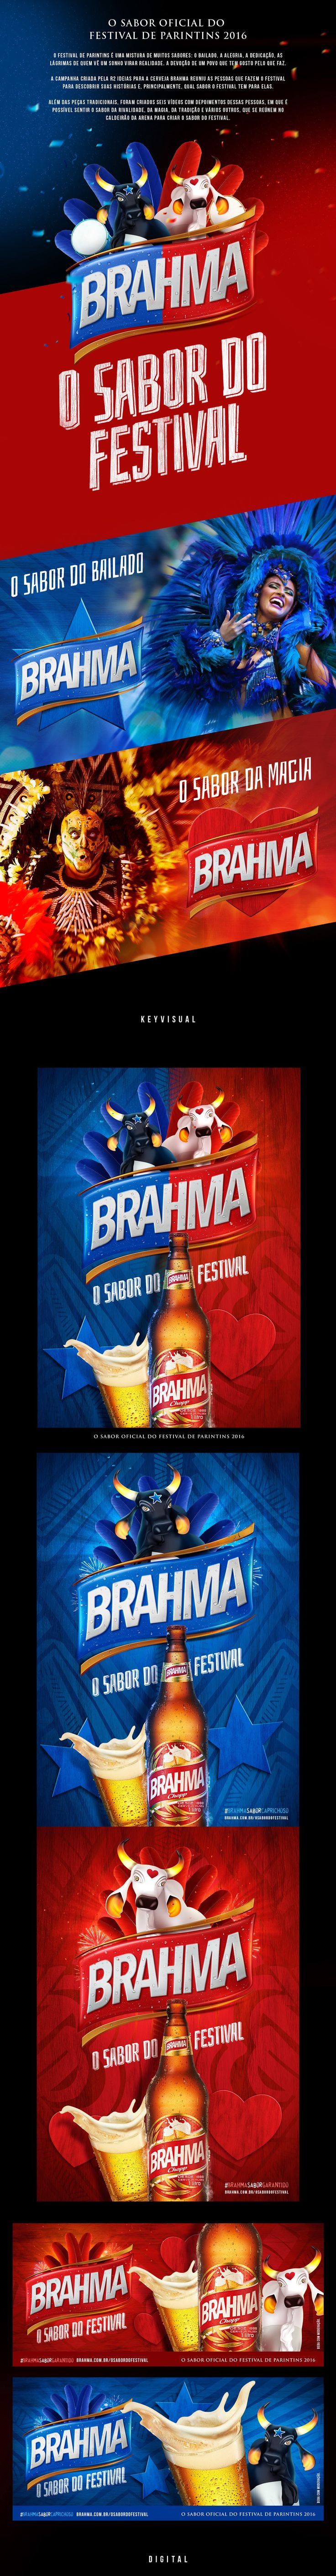 Cerveja Brahma - O Sabor do Festival on Behance